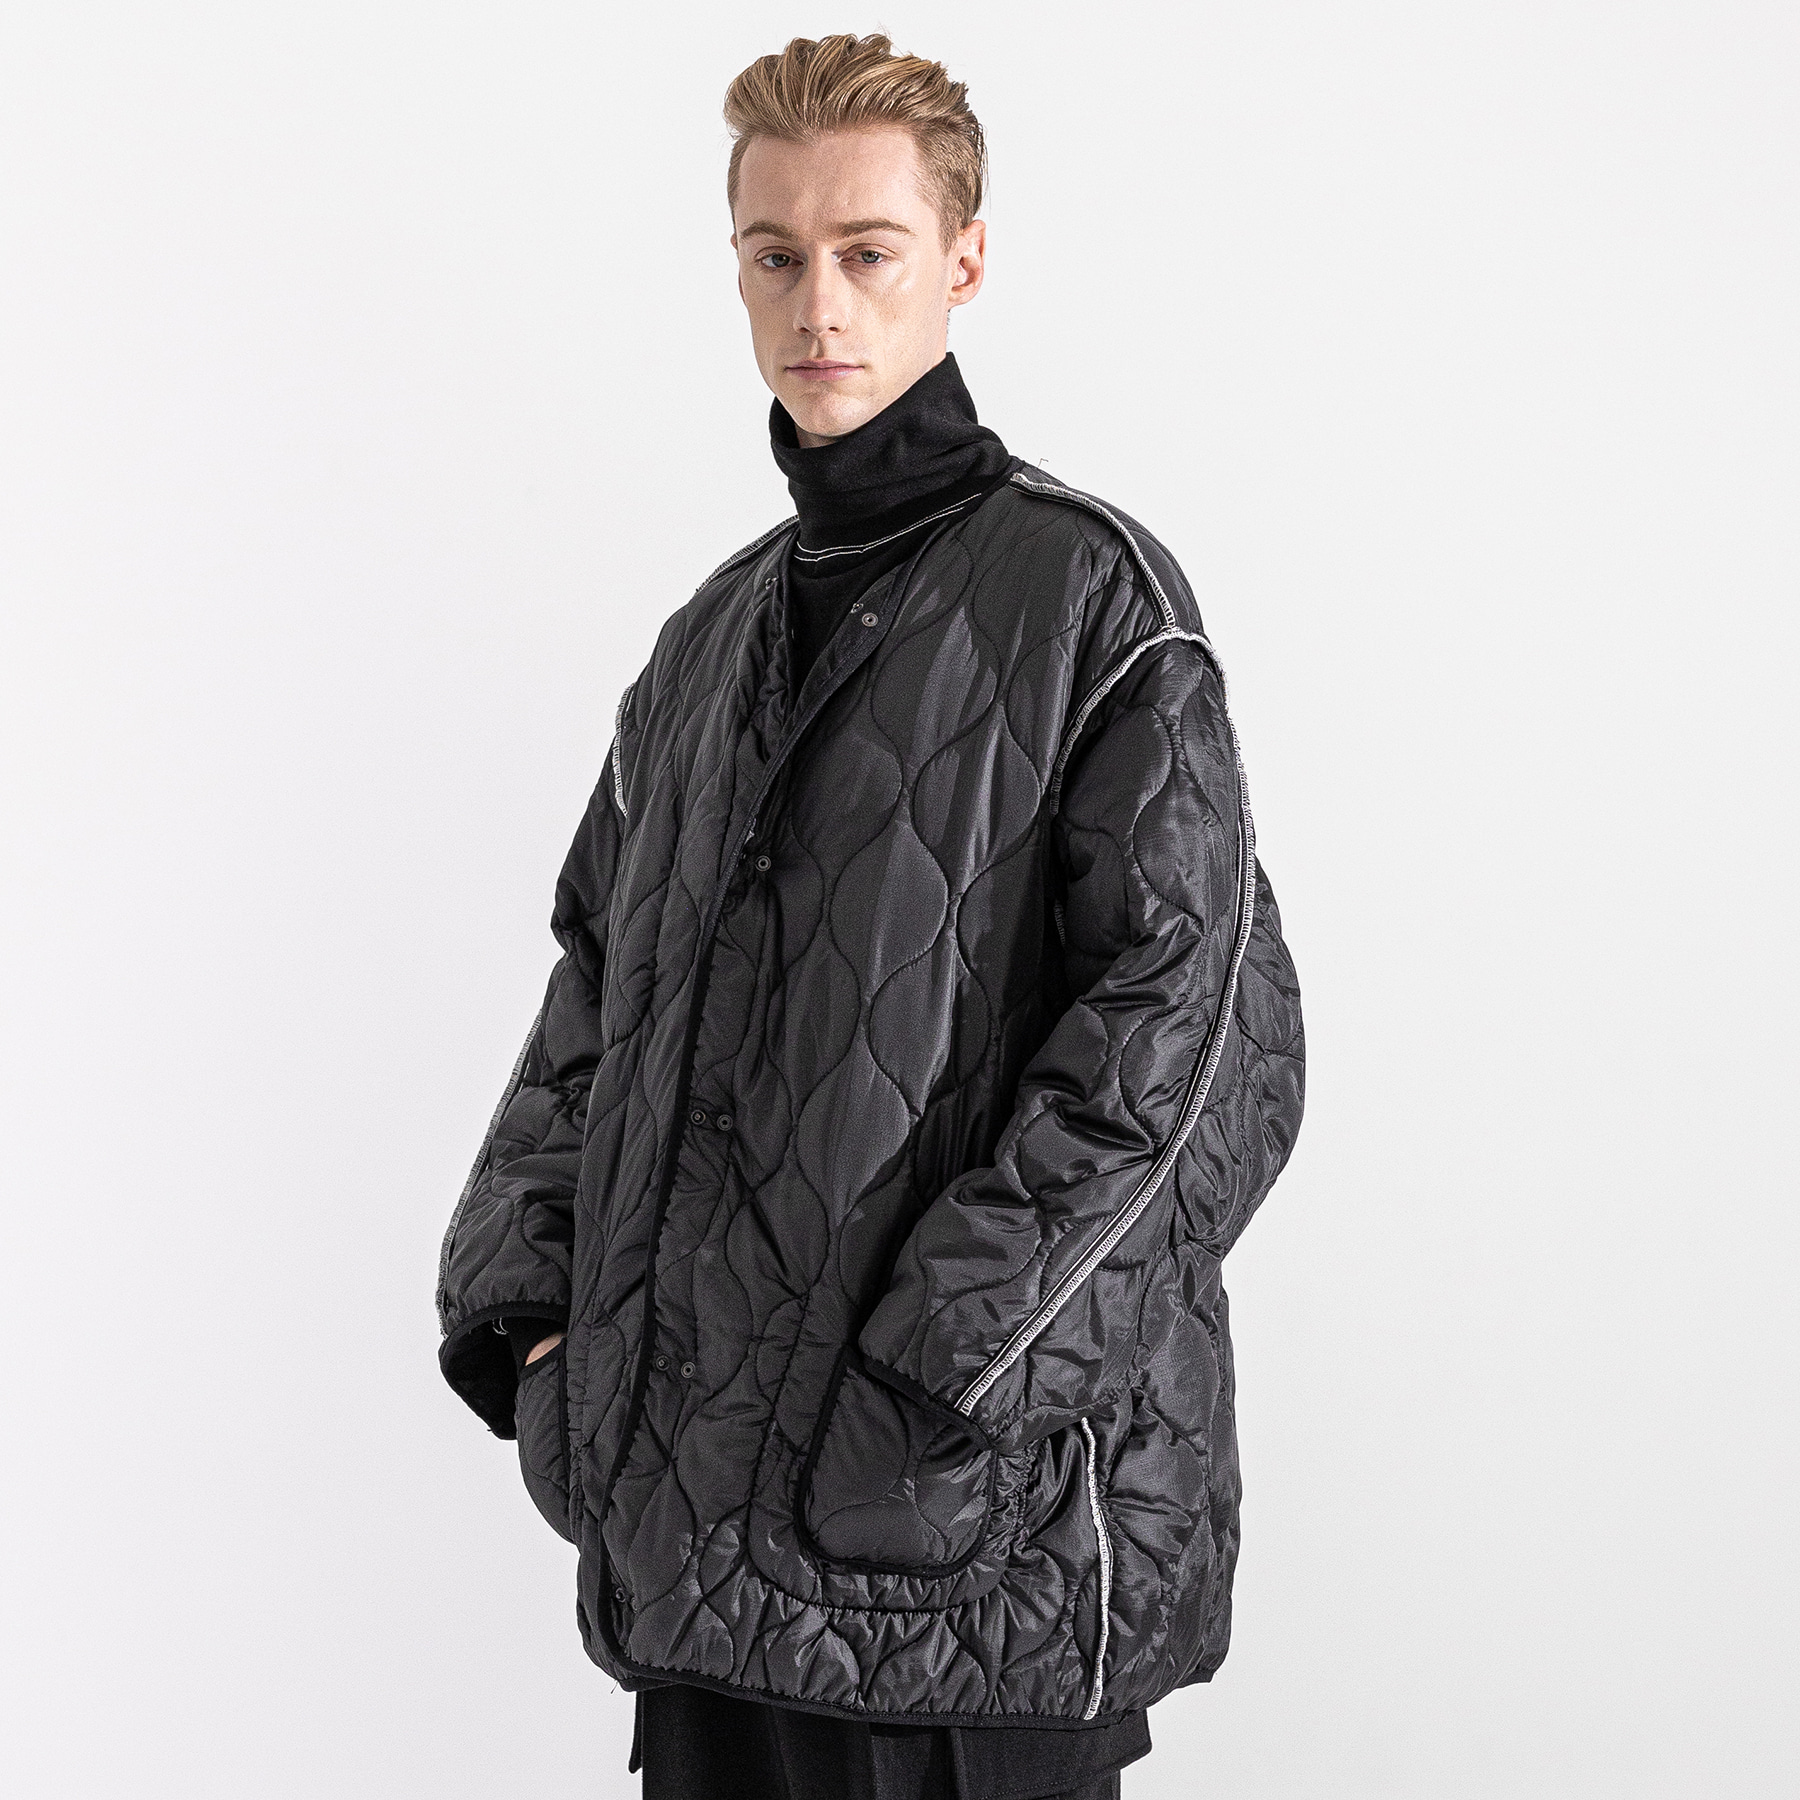 REVERSIBLE STICH QUILITING JACKET MWZJK002-BK